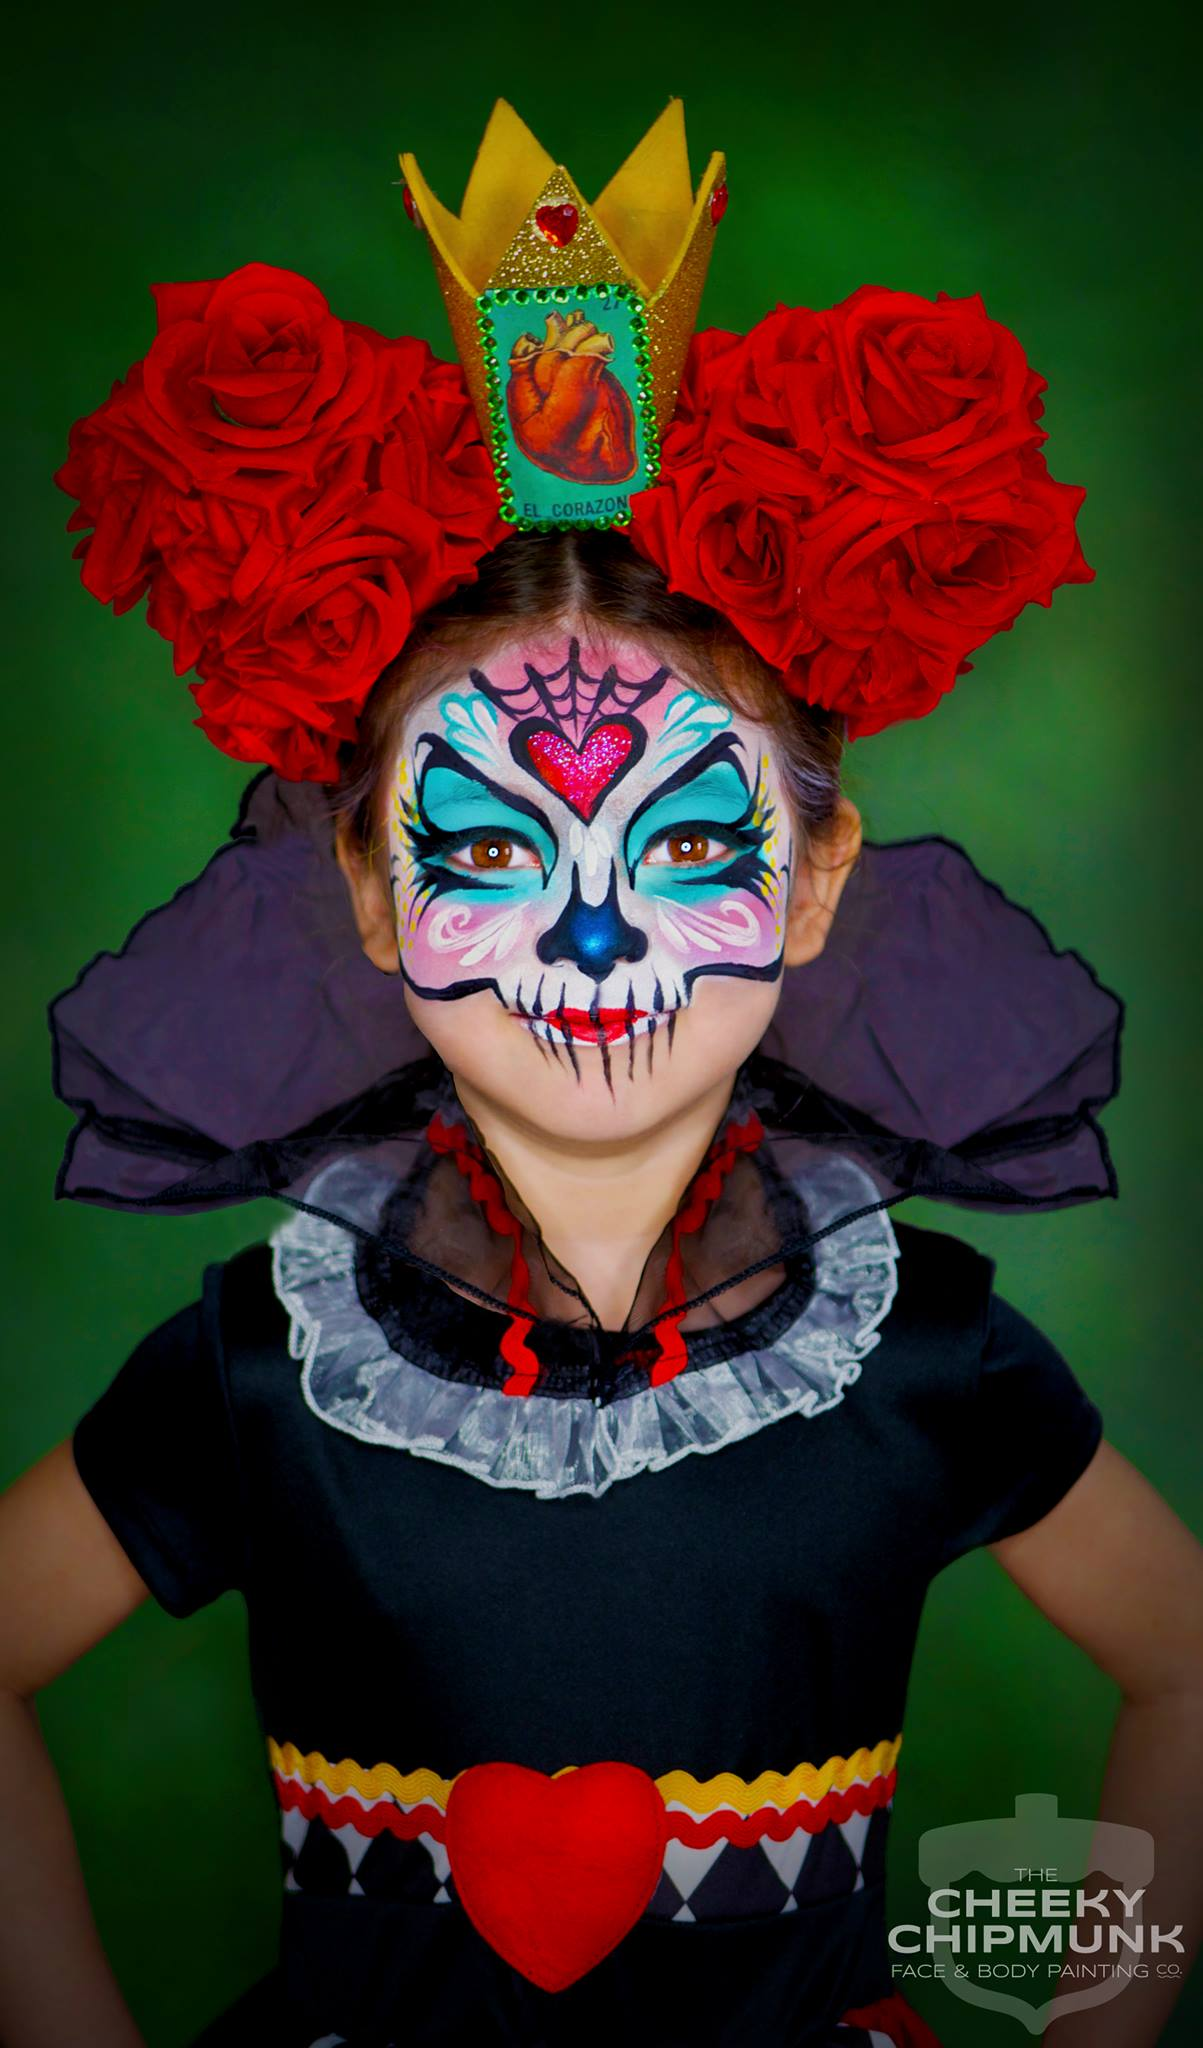 lenore-koppelman-the-cheeky-chipmunk-queen-of-hearts-sugar-skull-face-painting-calavera-roses-alice-in-wonderland-crown-heart-nyc